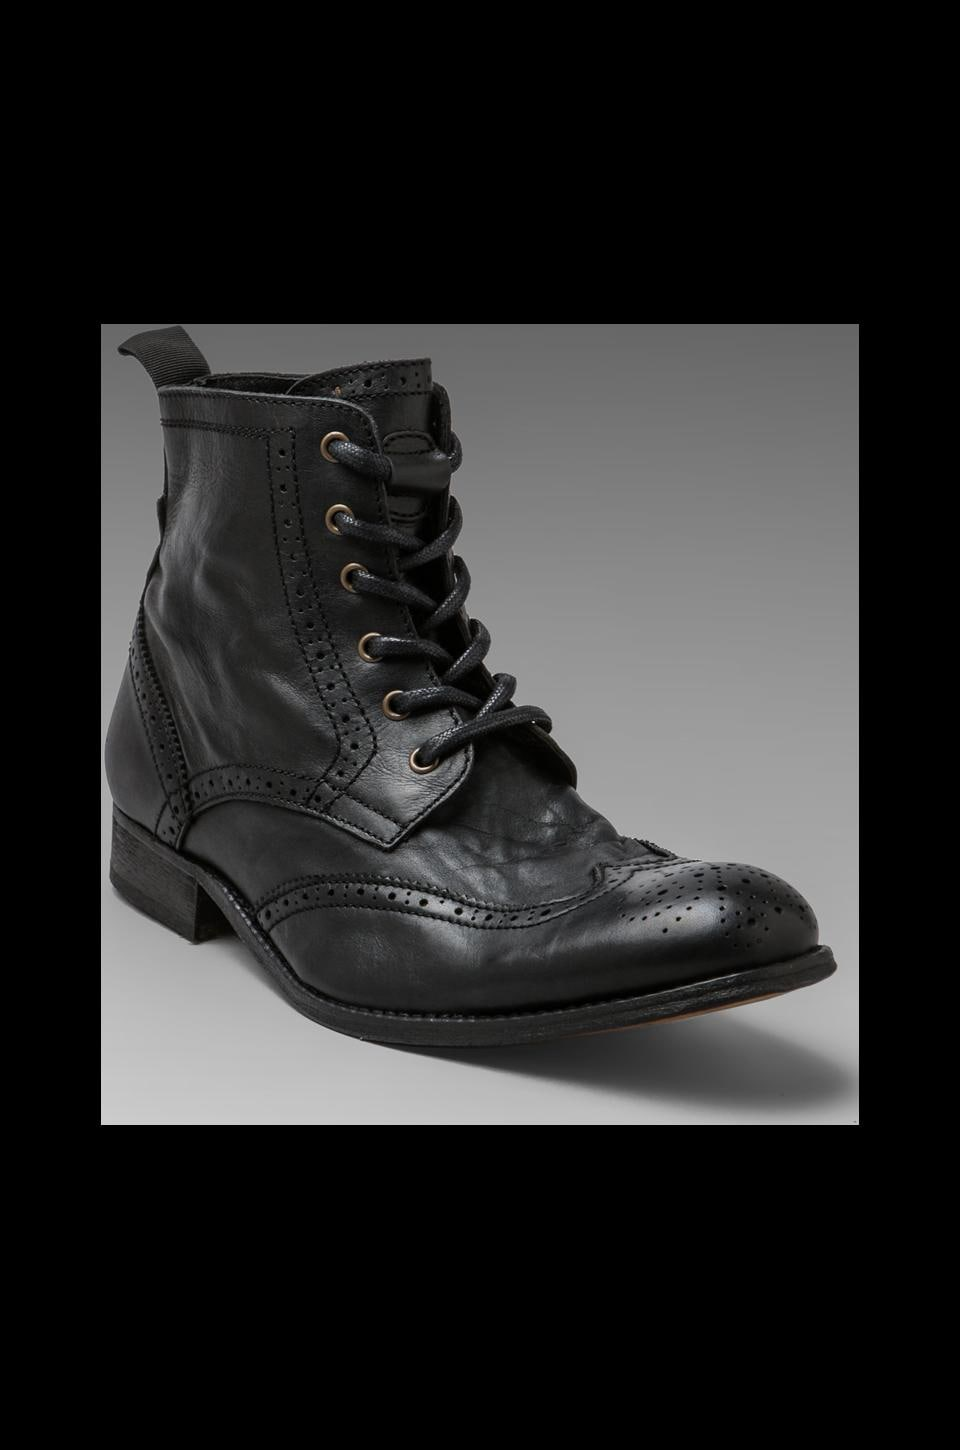 H by Hudson Angus Boot in Black